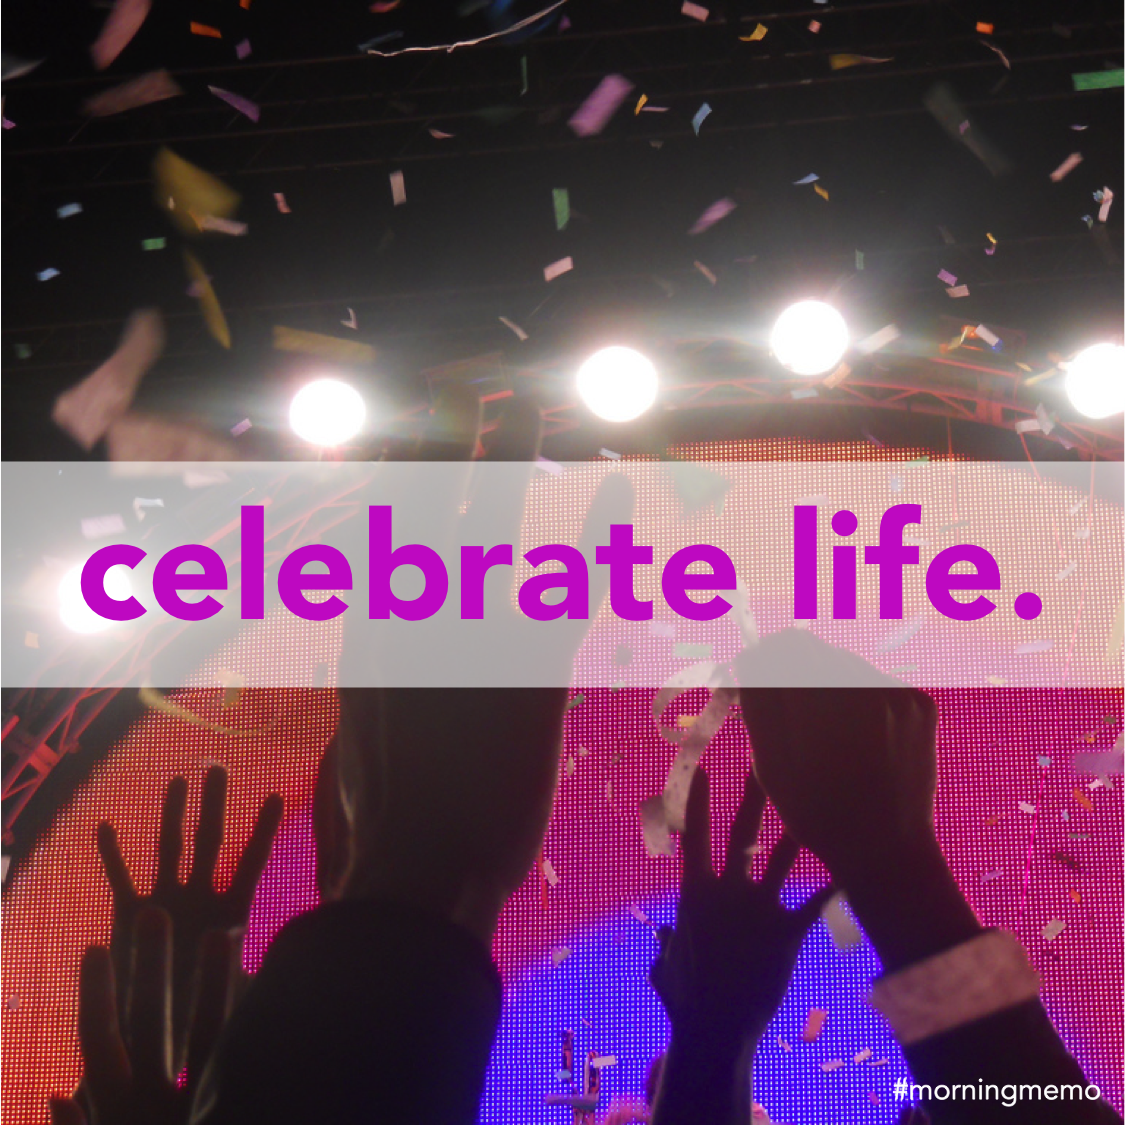 Celebrate Life Quotes: Inspiring Quotes About Celebrating Life